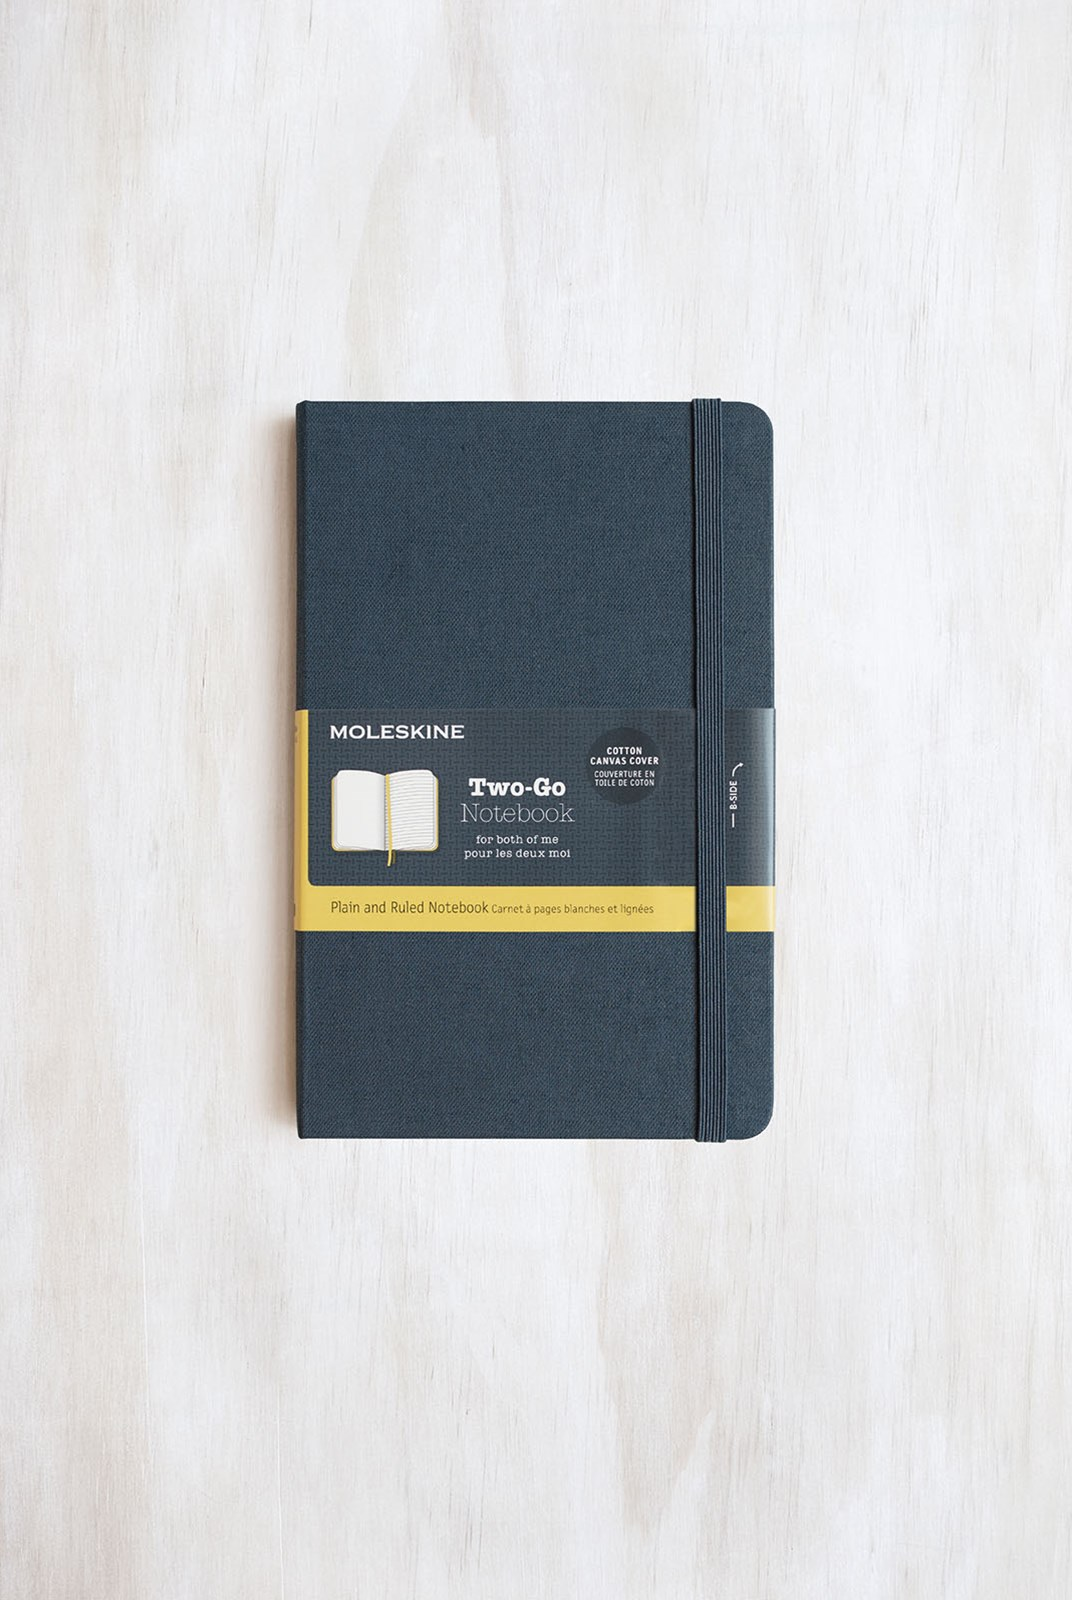 Moleskine - Two-Go Notebook - Canvas Cover - Ruled + Plain - Medium - Oriental Blue